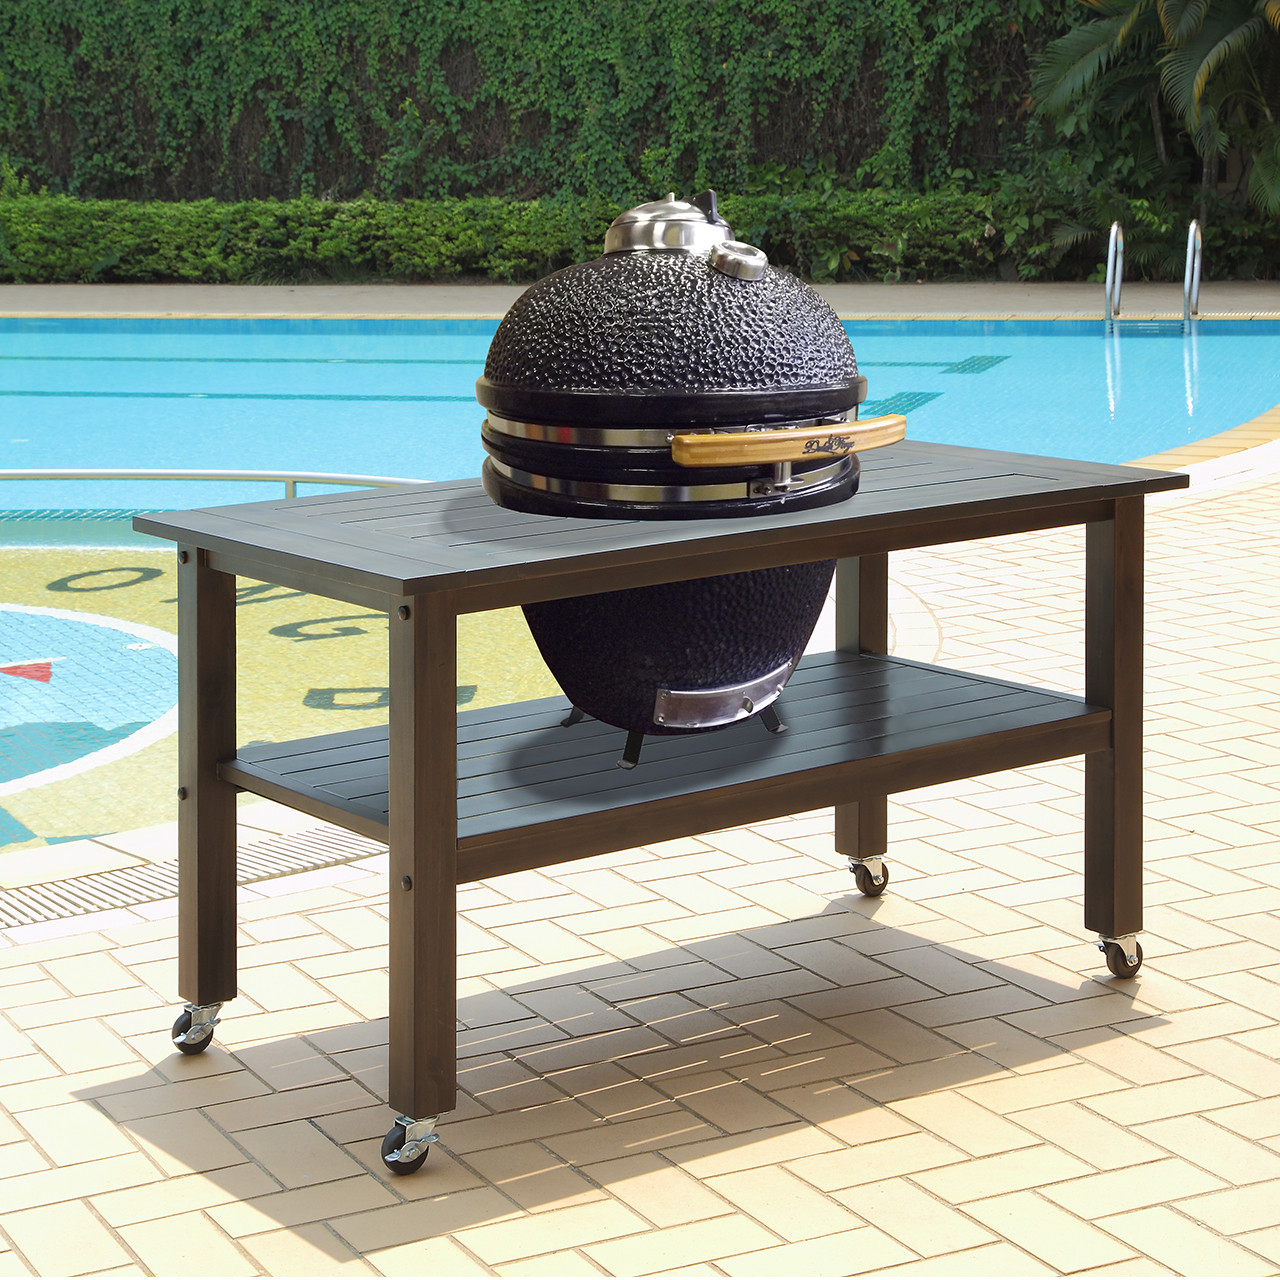 Betere Duluth Forge 21 Inch Kamado Grill With Table - Antique Grey XY-34